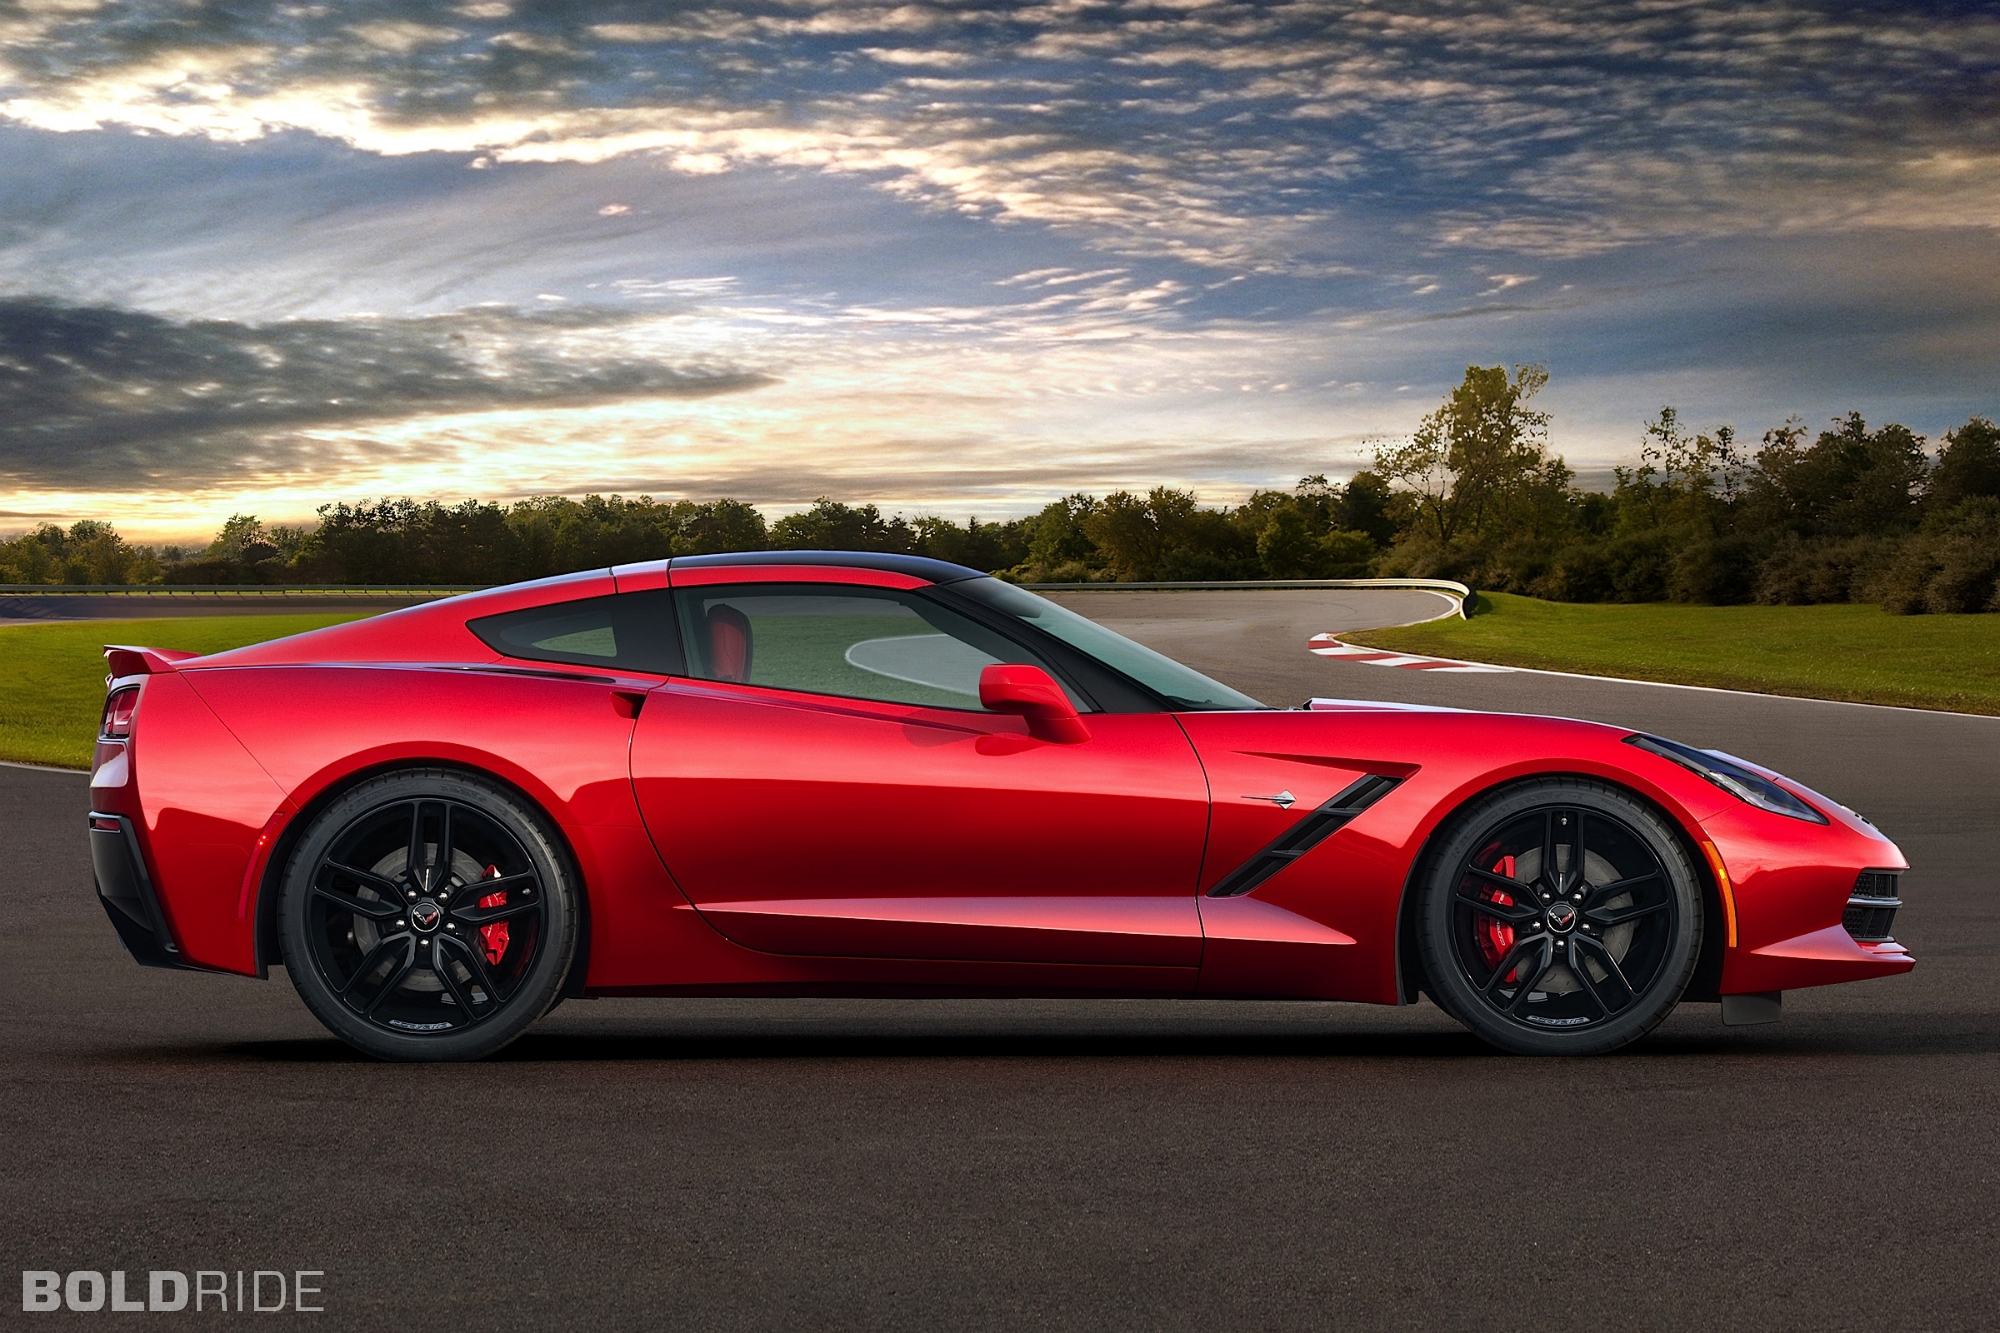 2014 Chevrolet Corvette Stingray 1280 x 1080